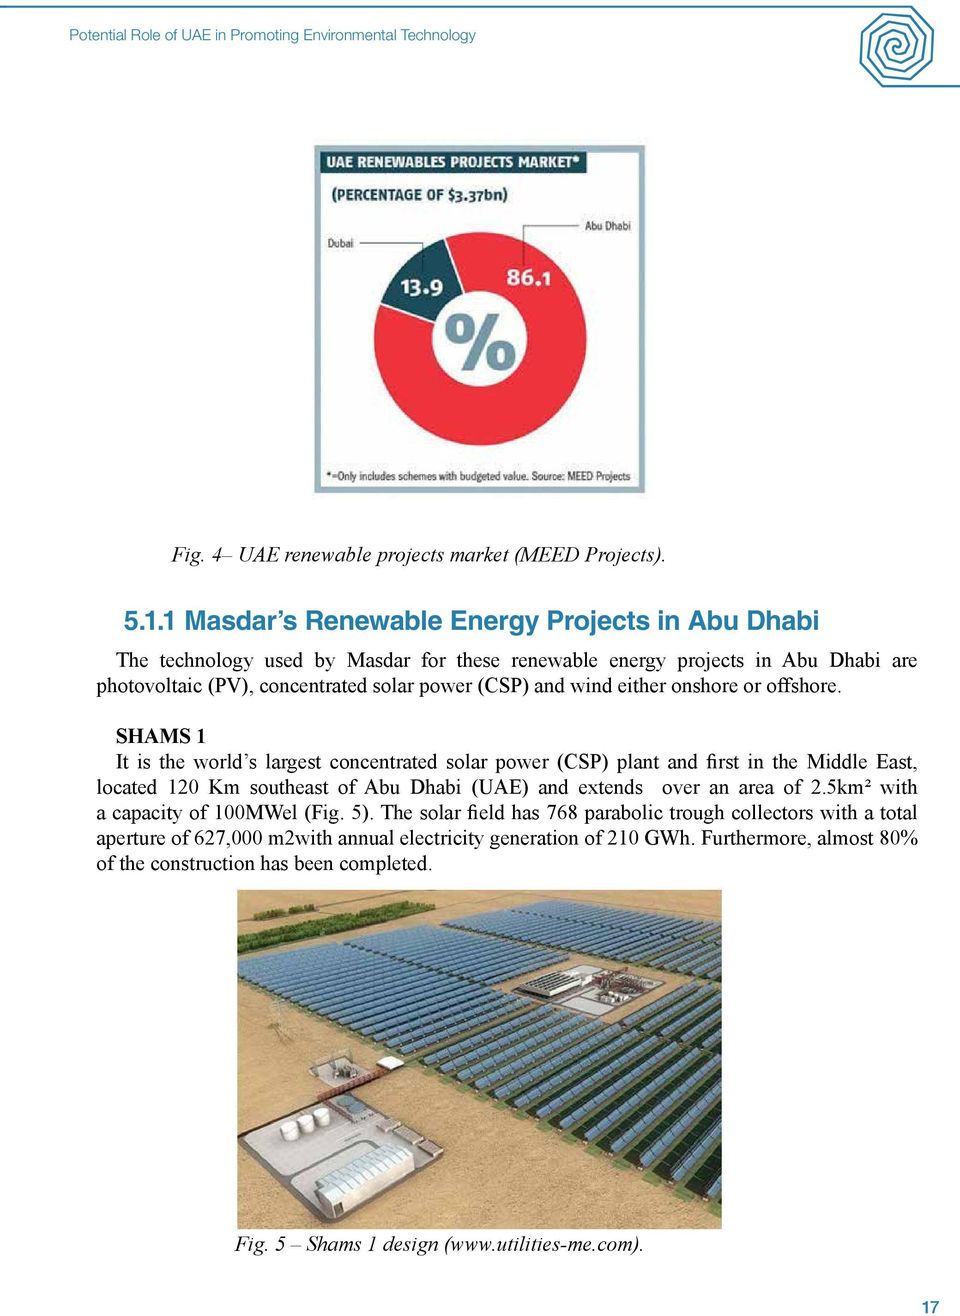 onshore or offshore. SHAMS 1 It is the world s largest concentrated solar power (CSP) plant and first in the Middle East, located 120 Km southeast of Abu Dhabi (UAE) and extends over an area of 2.